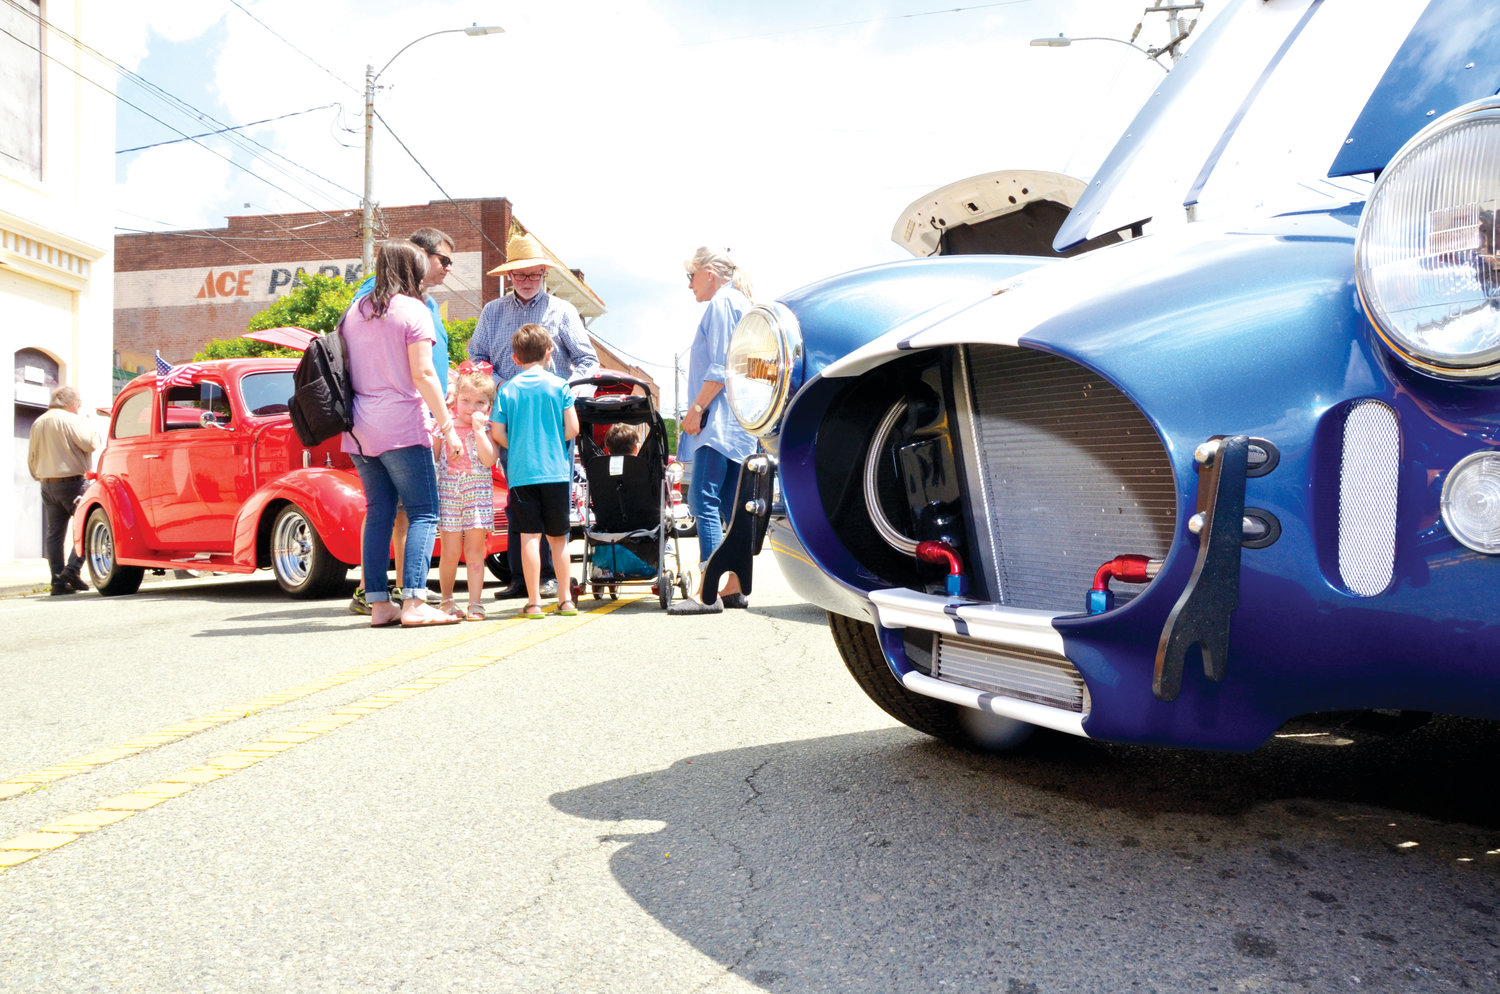 A Shelby Cobra, based on the Ford Mustang, sits at the curb while car fans pass by at Saturday's Spring  Chicken Festival.